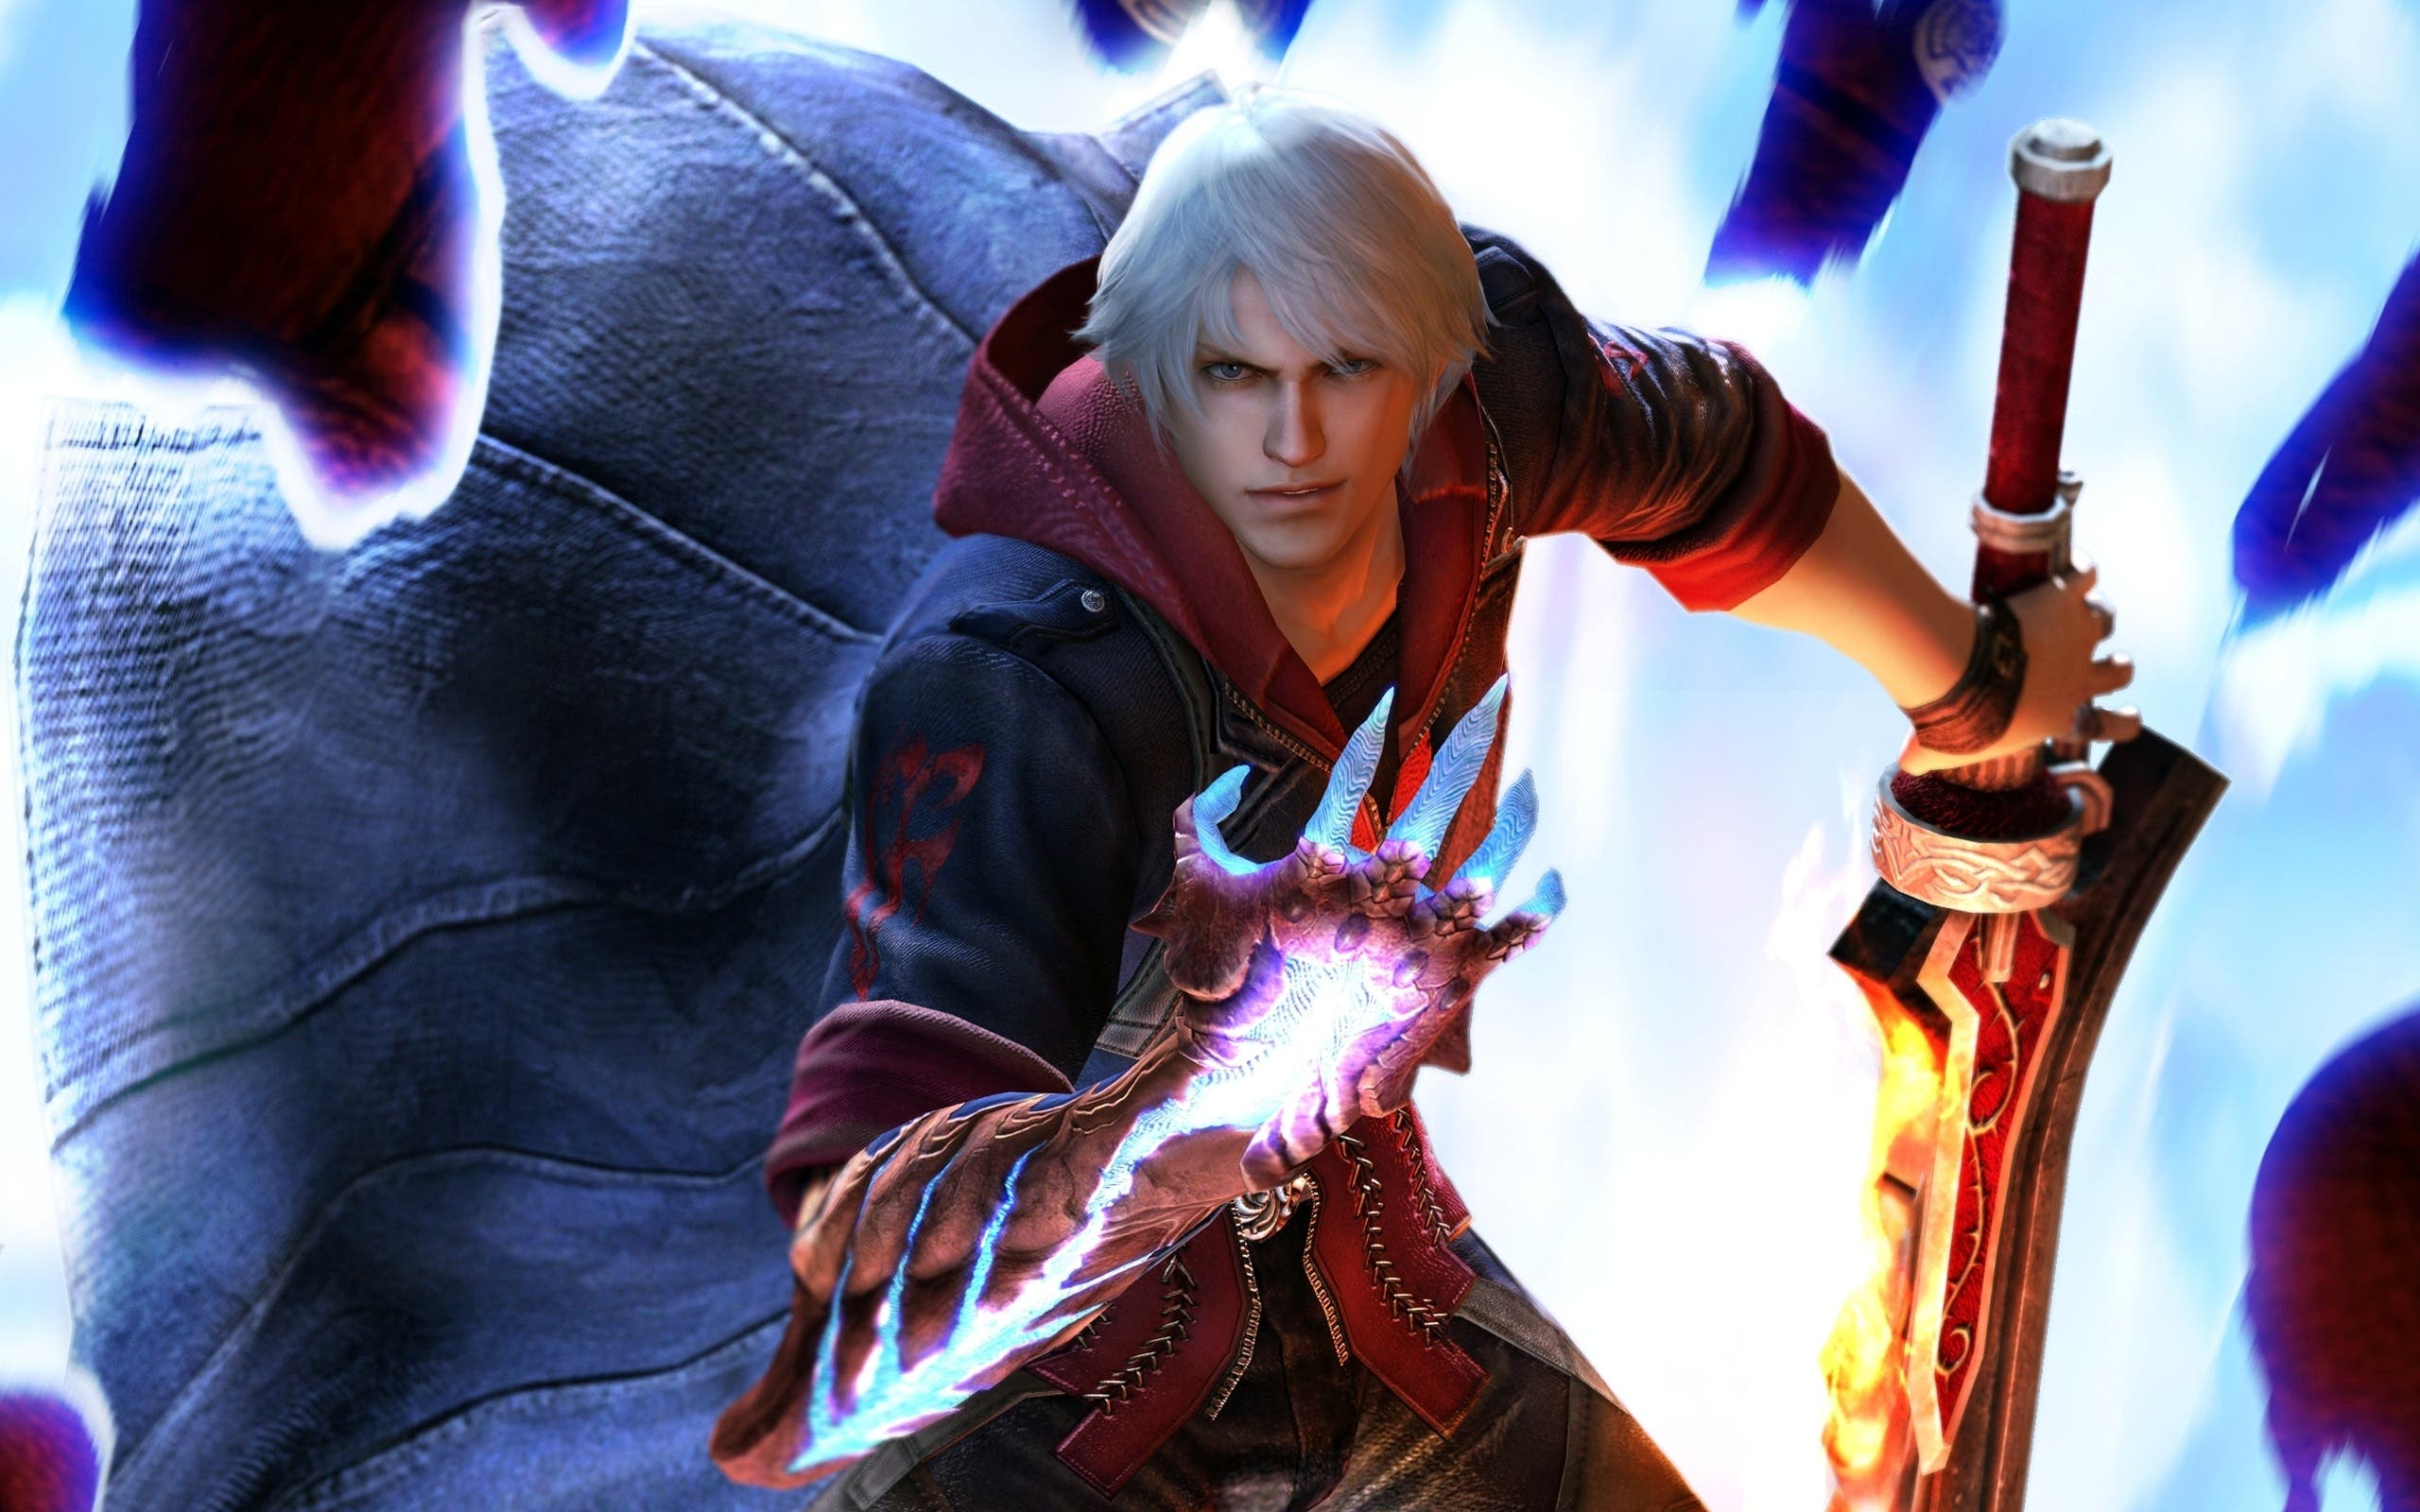 Devil-May-Cry-4-PC-game_2560x1600